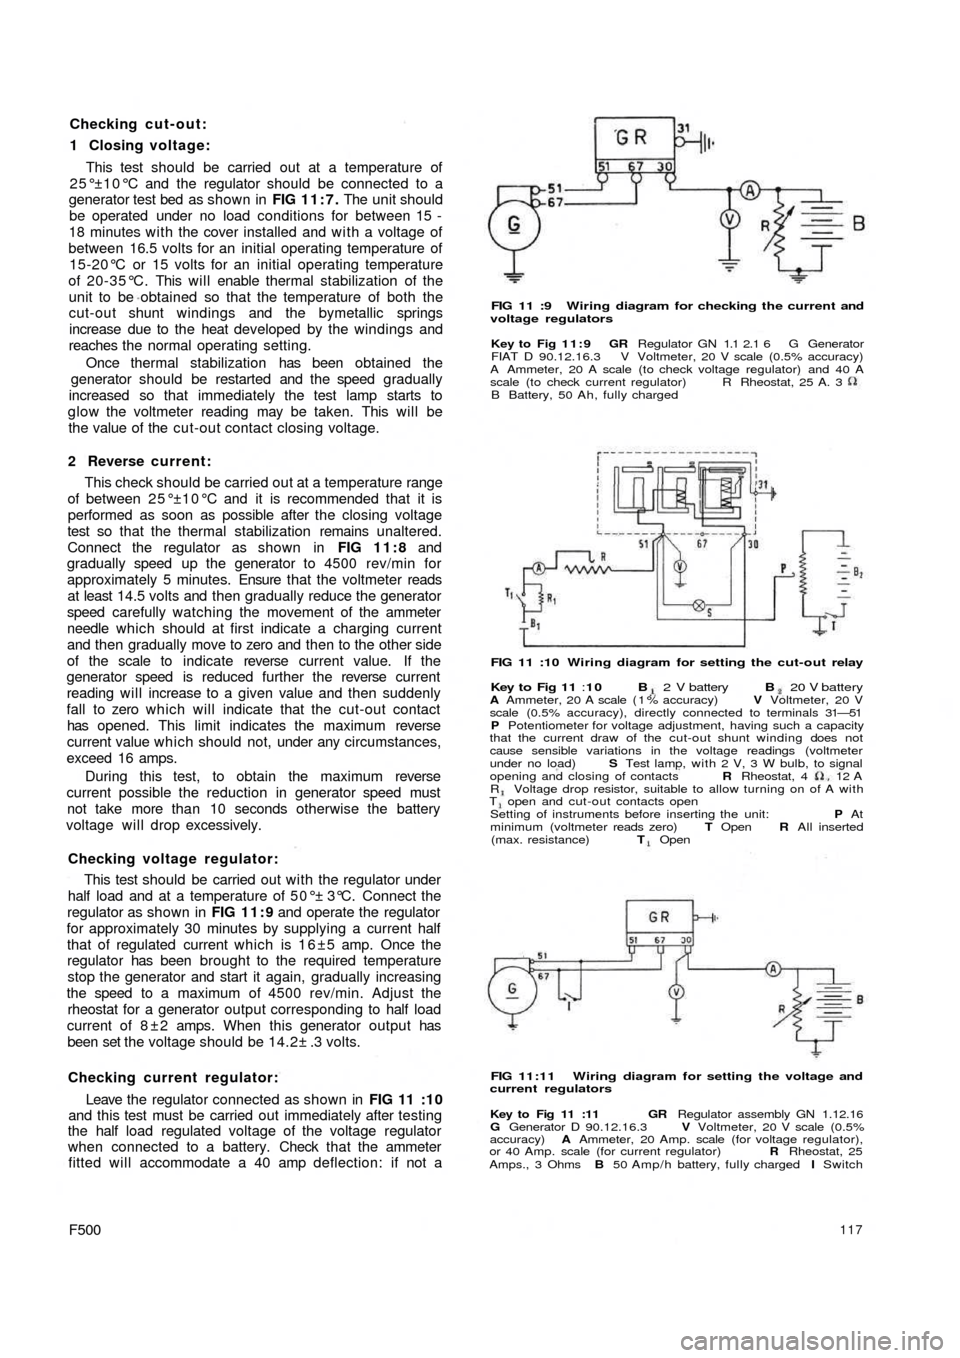 w960_4482 109 bulb fiat 500 1969 1 g workshop manual 1969 fiat 500 wiring diagram at crackthecode.co